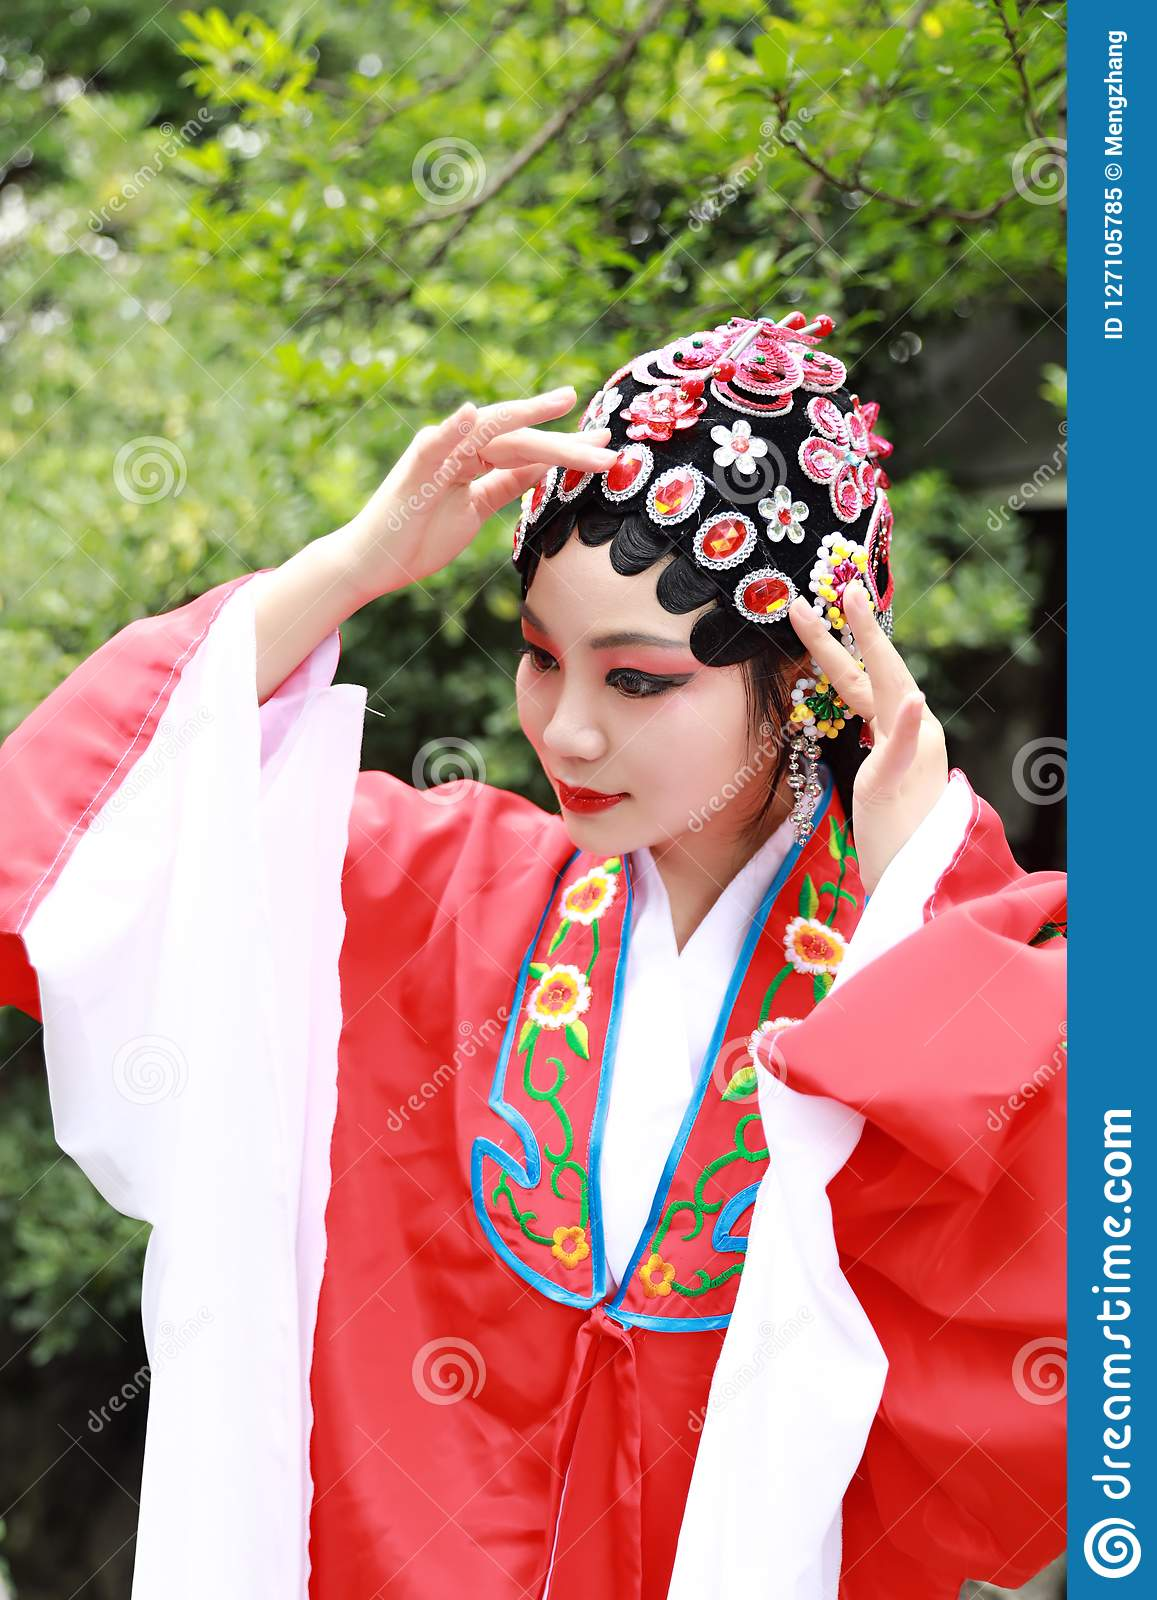 9c75e7aeb Aisa Chinese woman Peking Beijing Opera Costumes Pavilion garden China  traditional role drama play dress perform